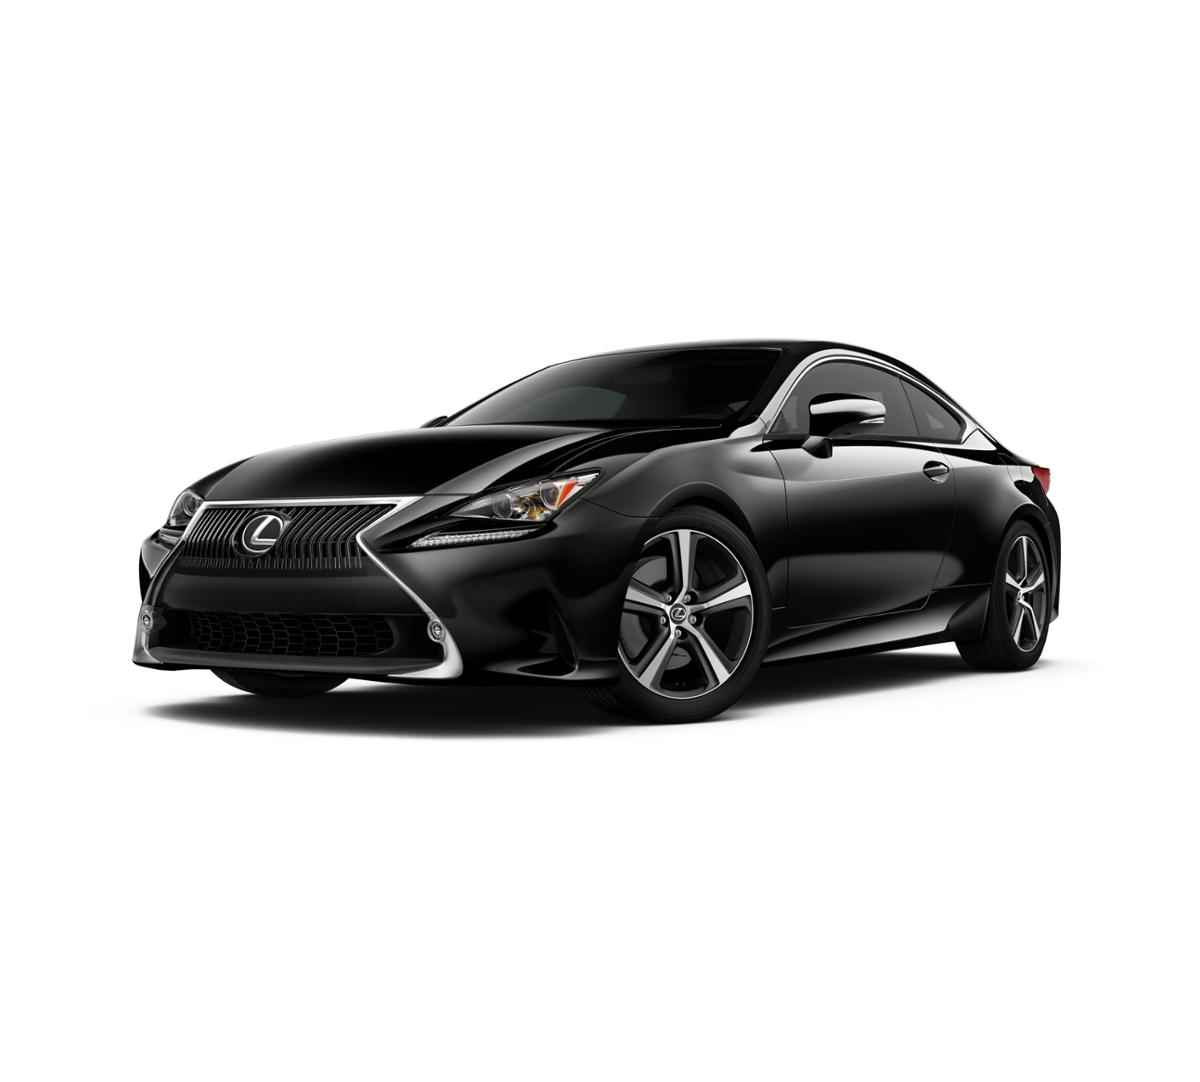 2017 Lexus RC Turbo Vehicle Photo in Houston, TX 77074